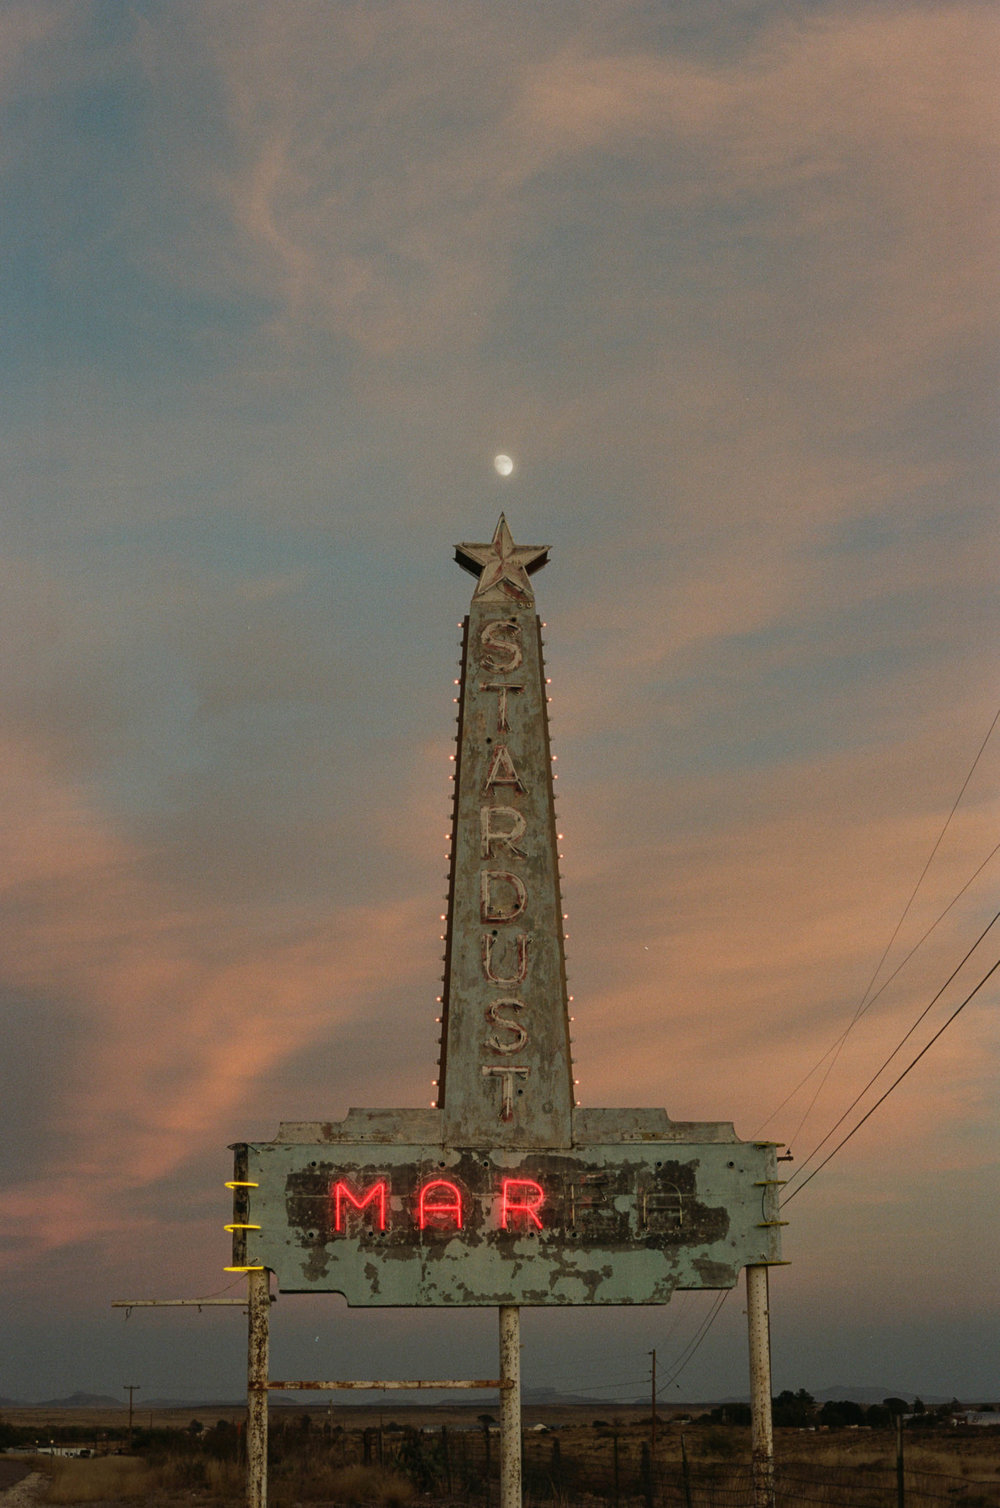 road-trip-marfa-texas-sunset-moon-portra-160-1